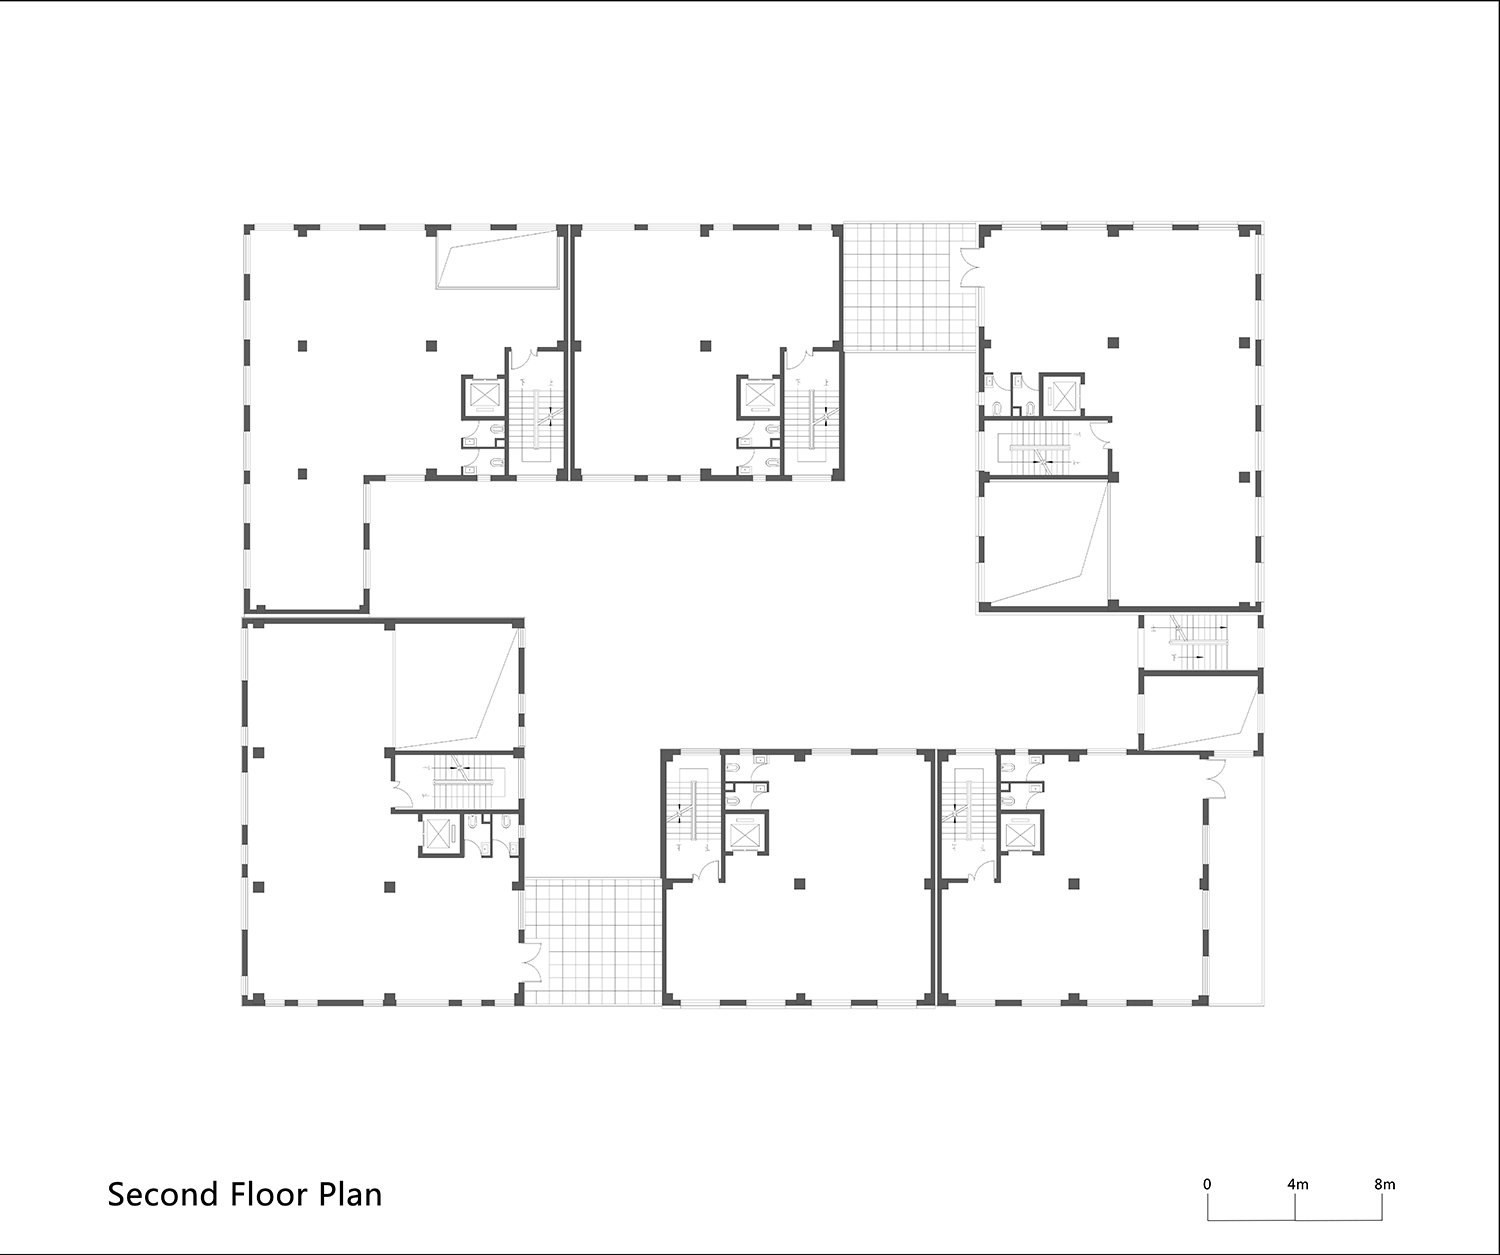 Second Floor Plan of One Building WSP ARCHITECTS}